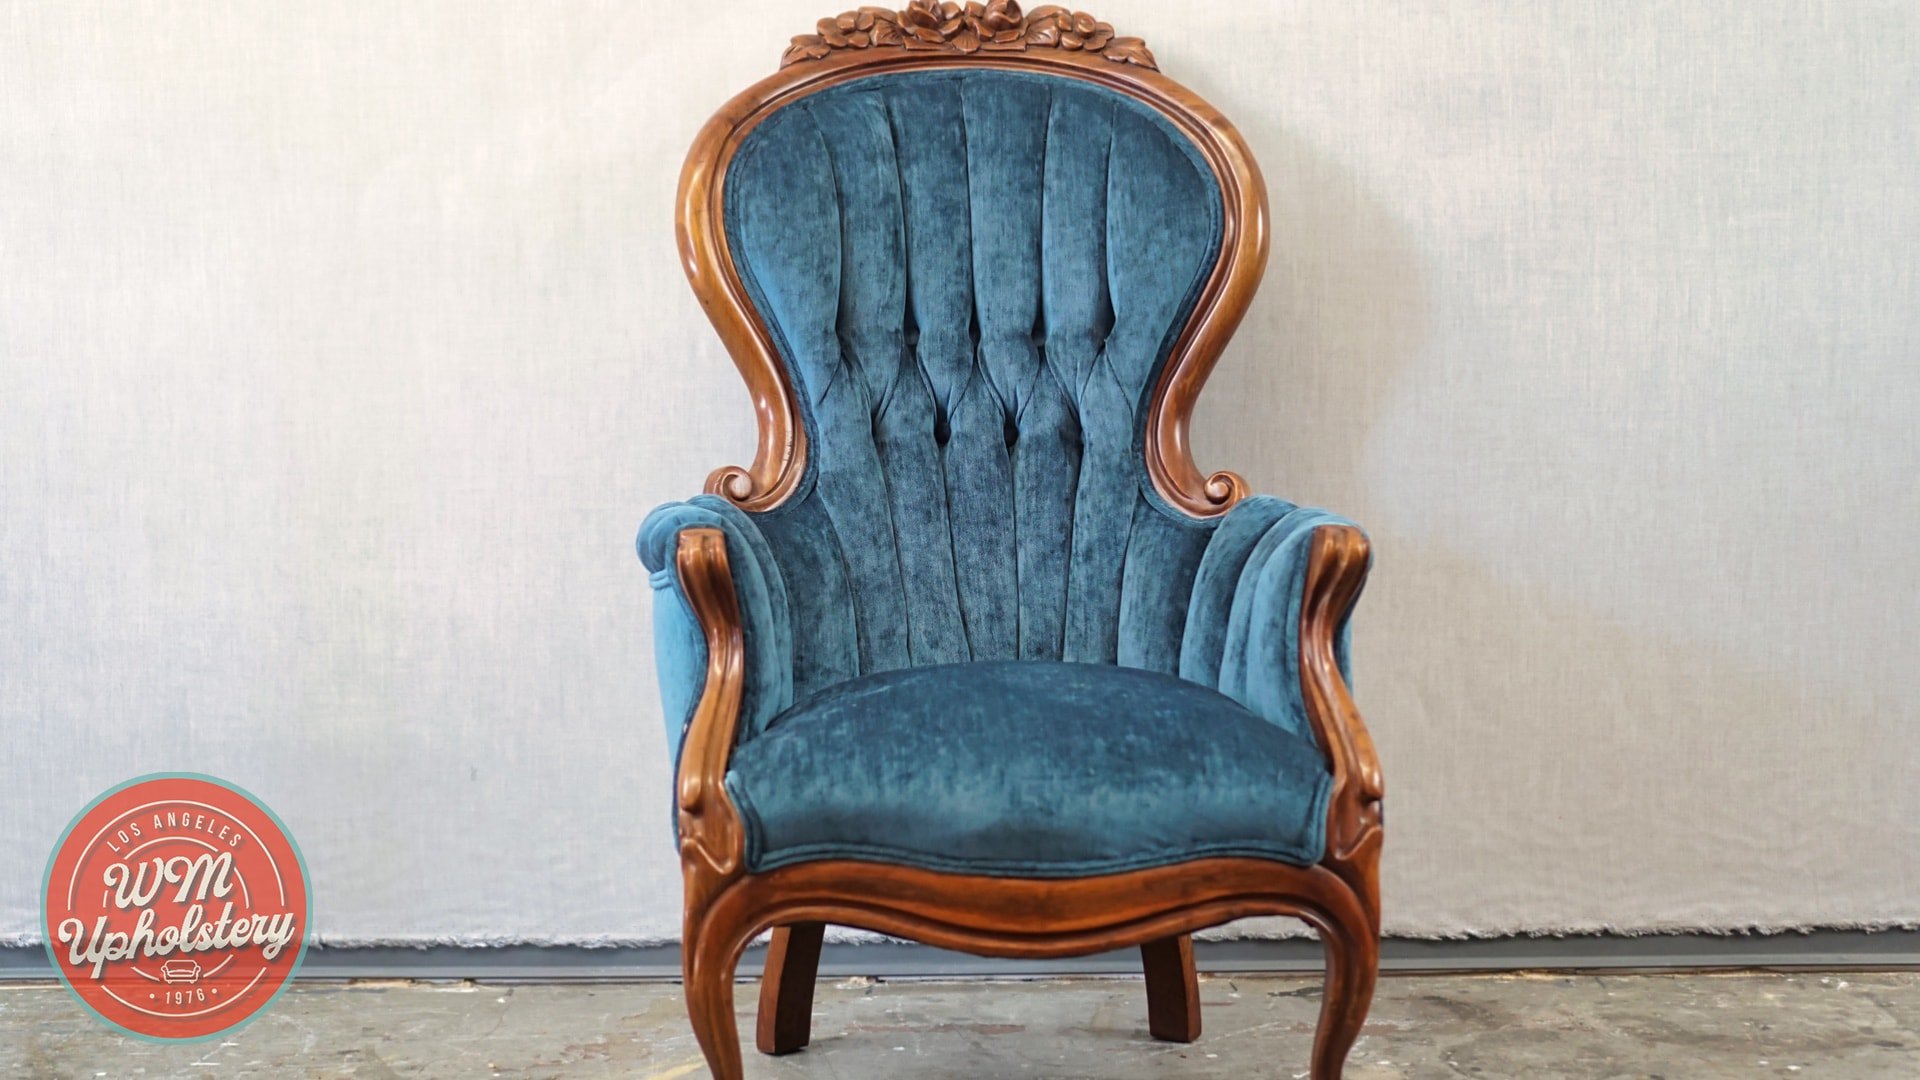 los angeles and van nuys furniture chairs